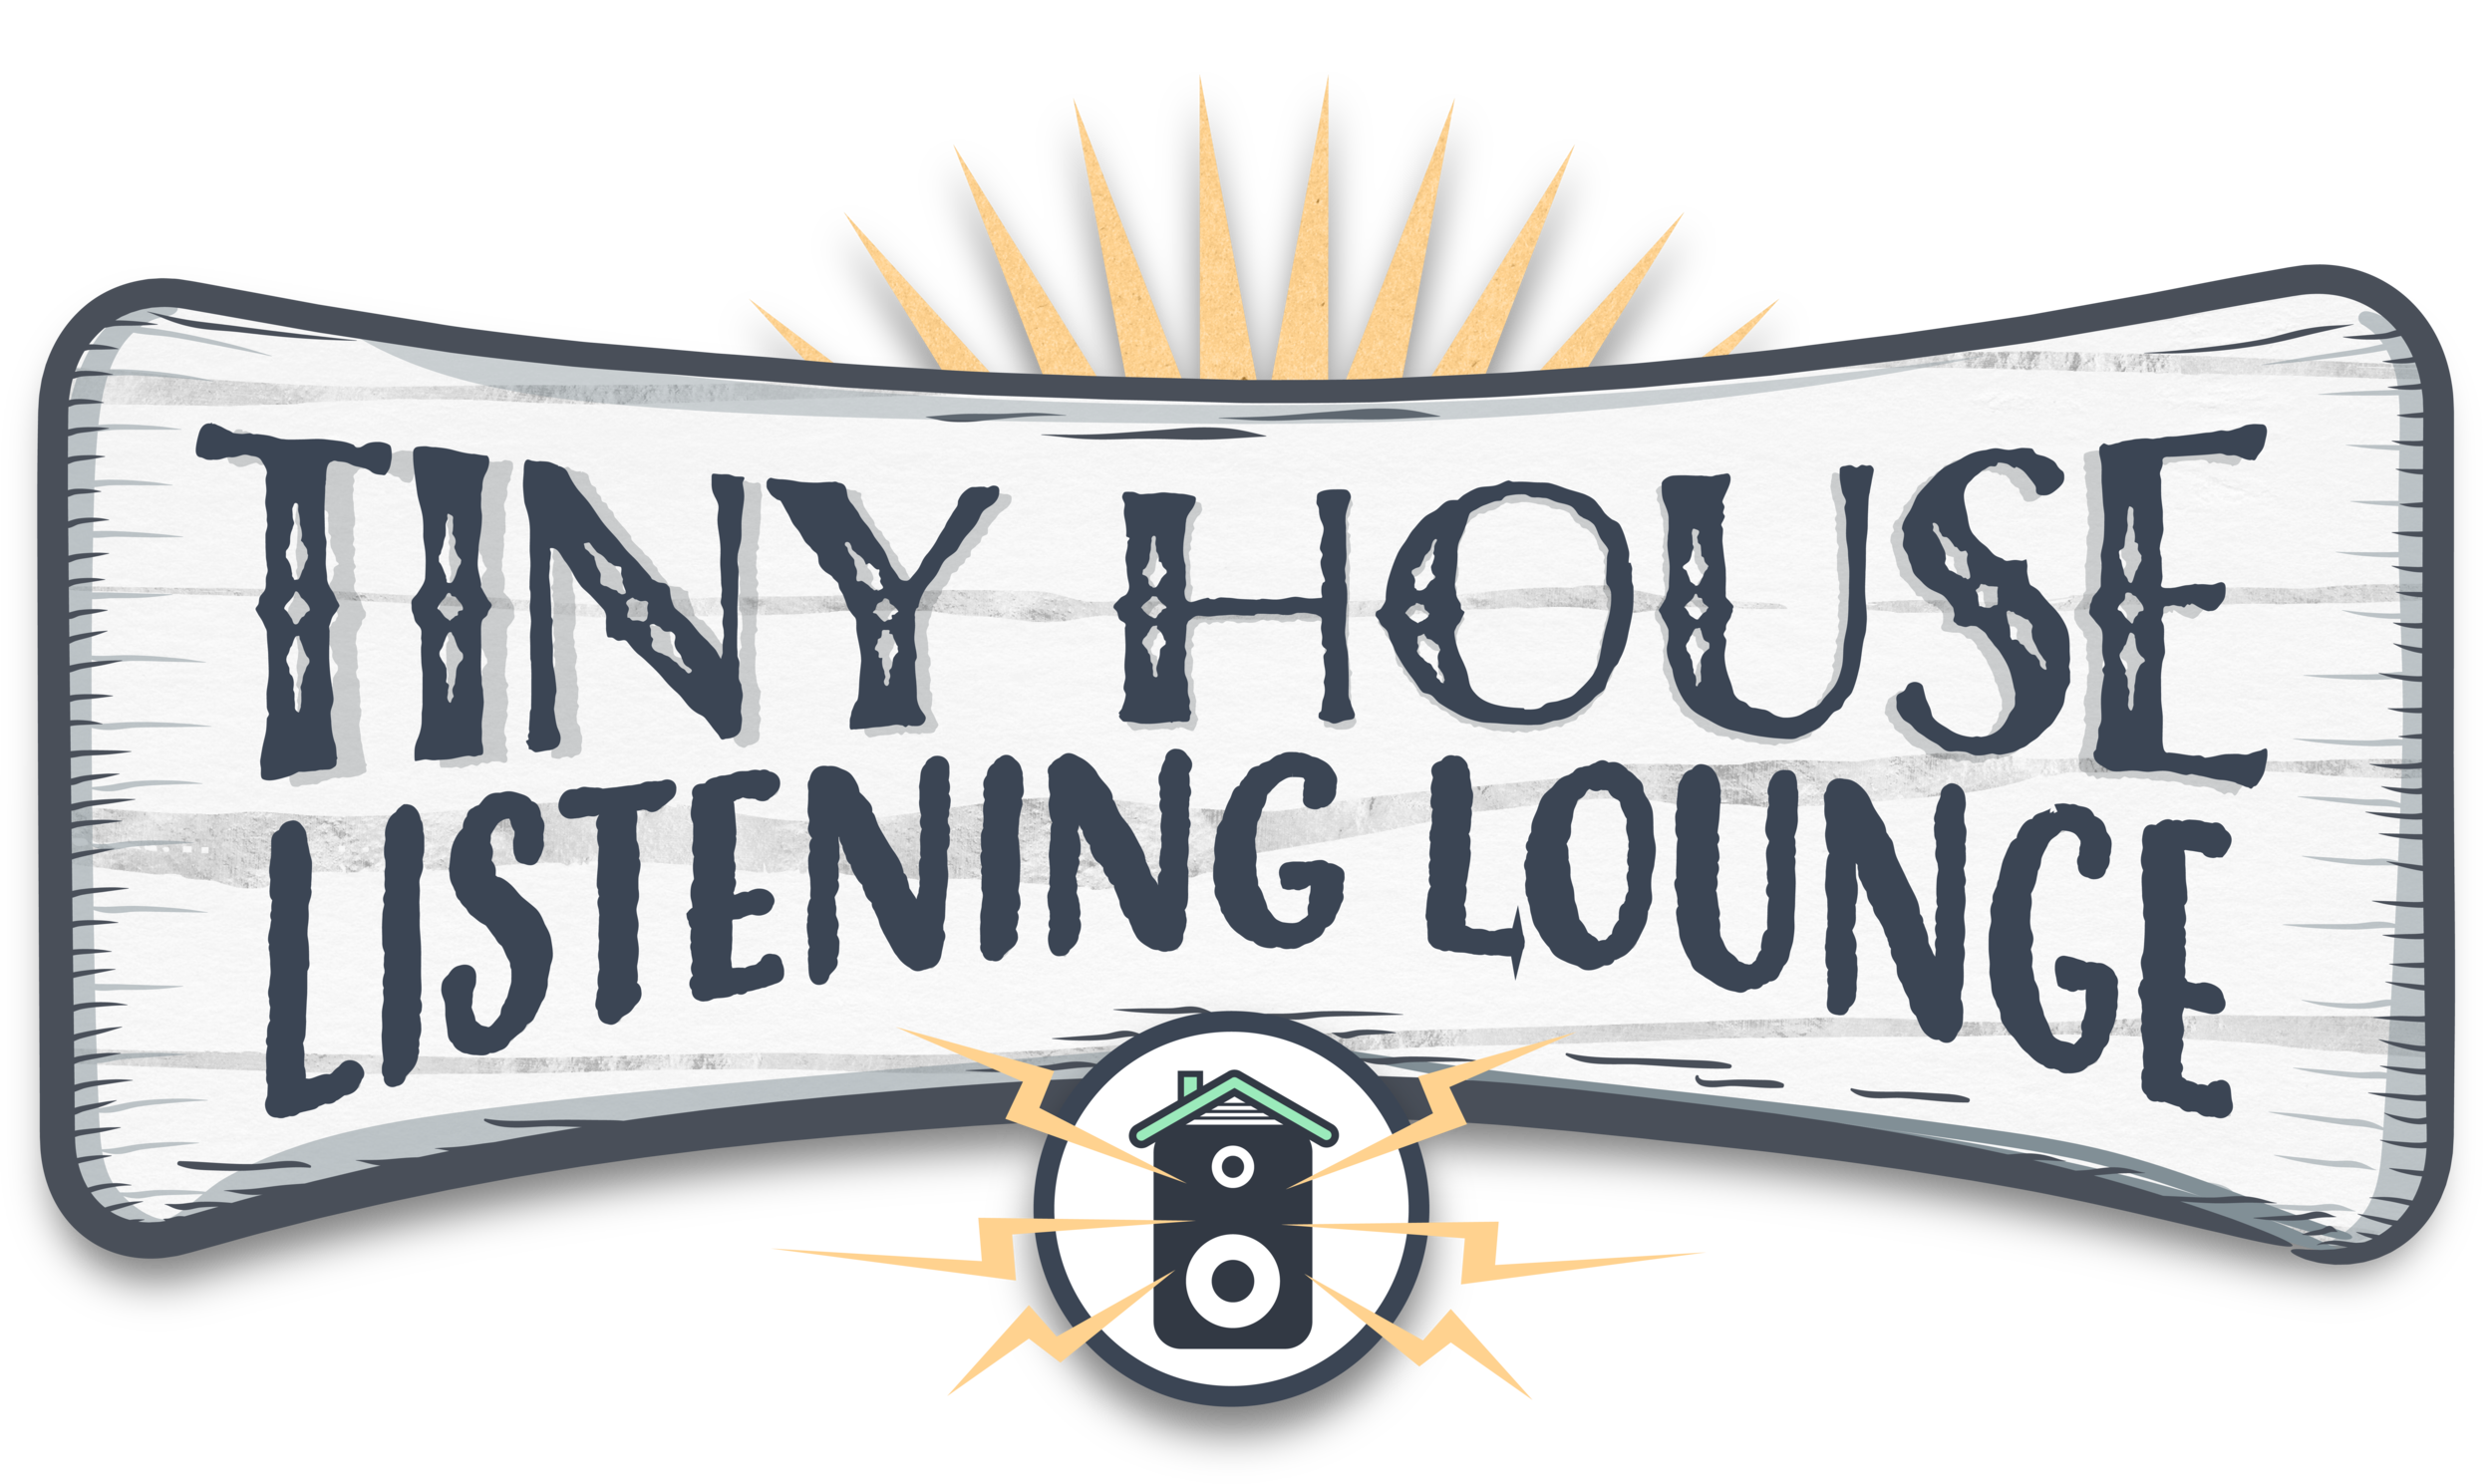 tiny-house-listening-lounge-logo.png